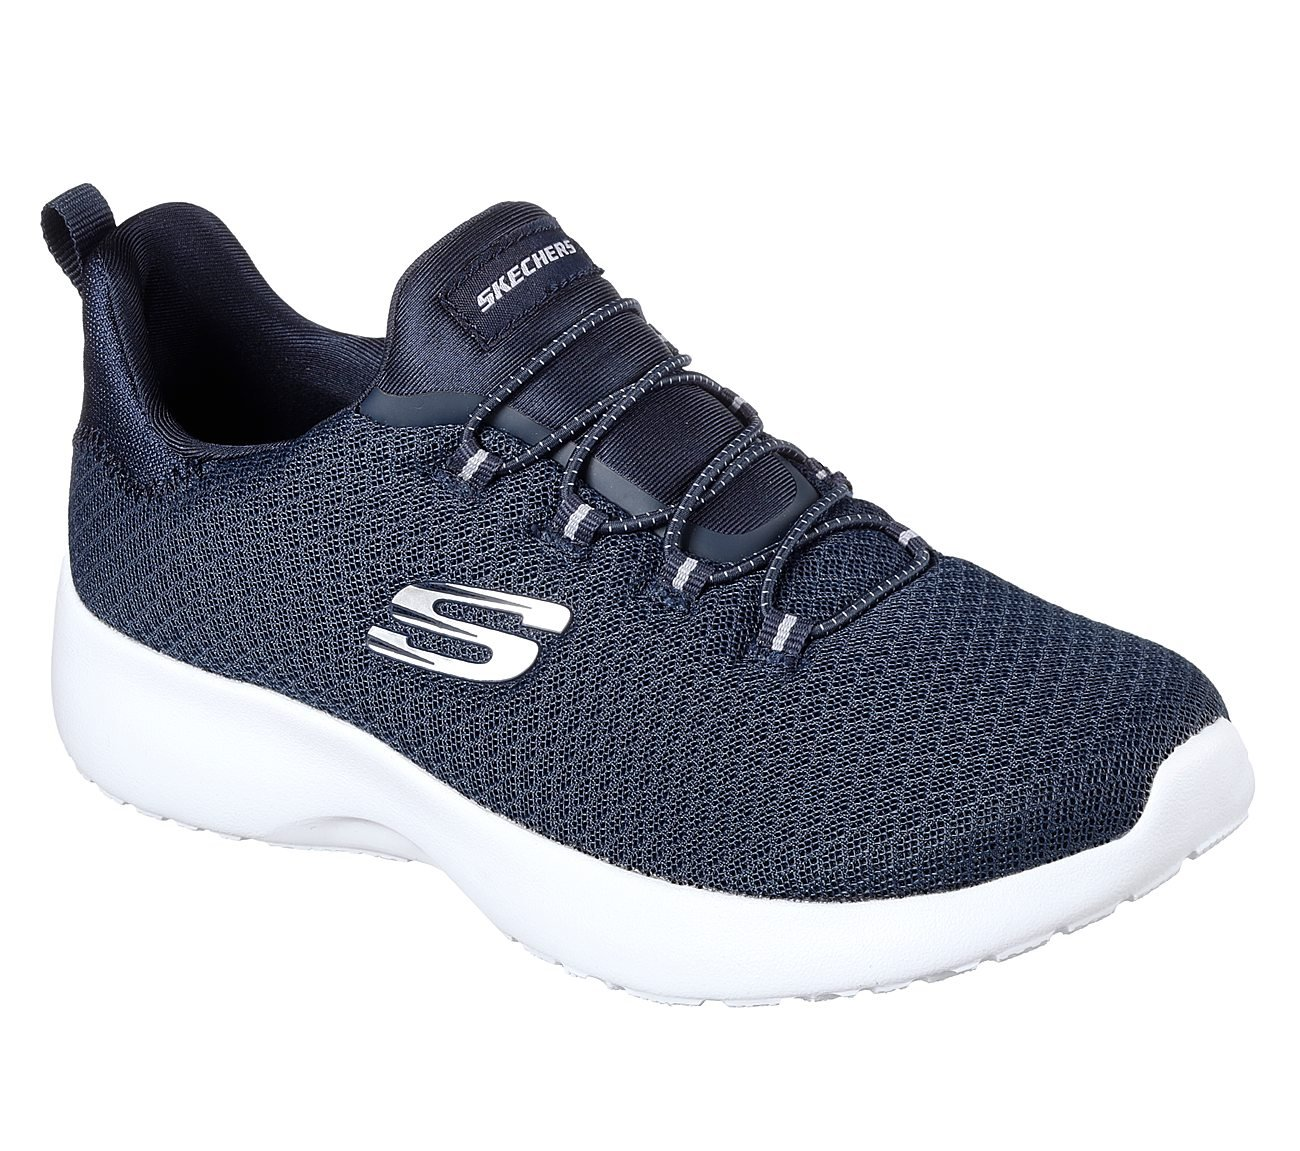 Skechers 12991/GYLP Dynamight-Break-Through Damen Sneaker Slipper Grau/Rosa  39 C/D EU|Navy